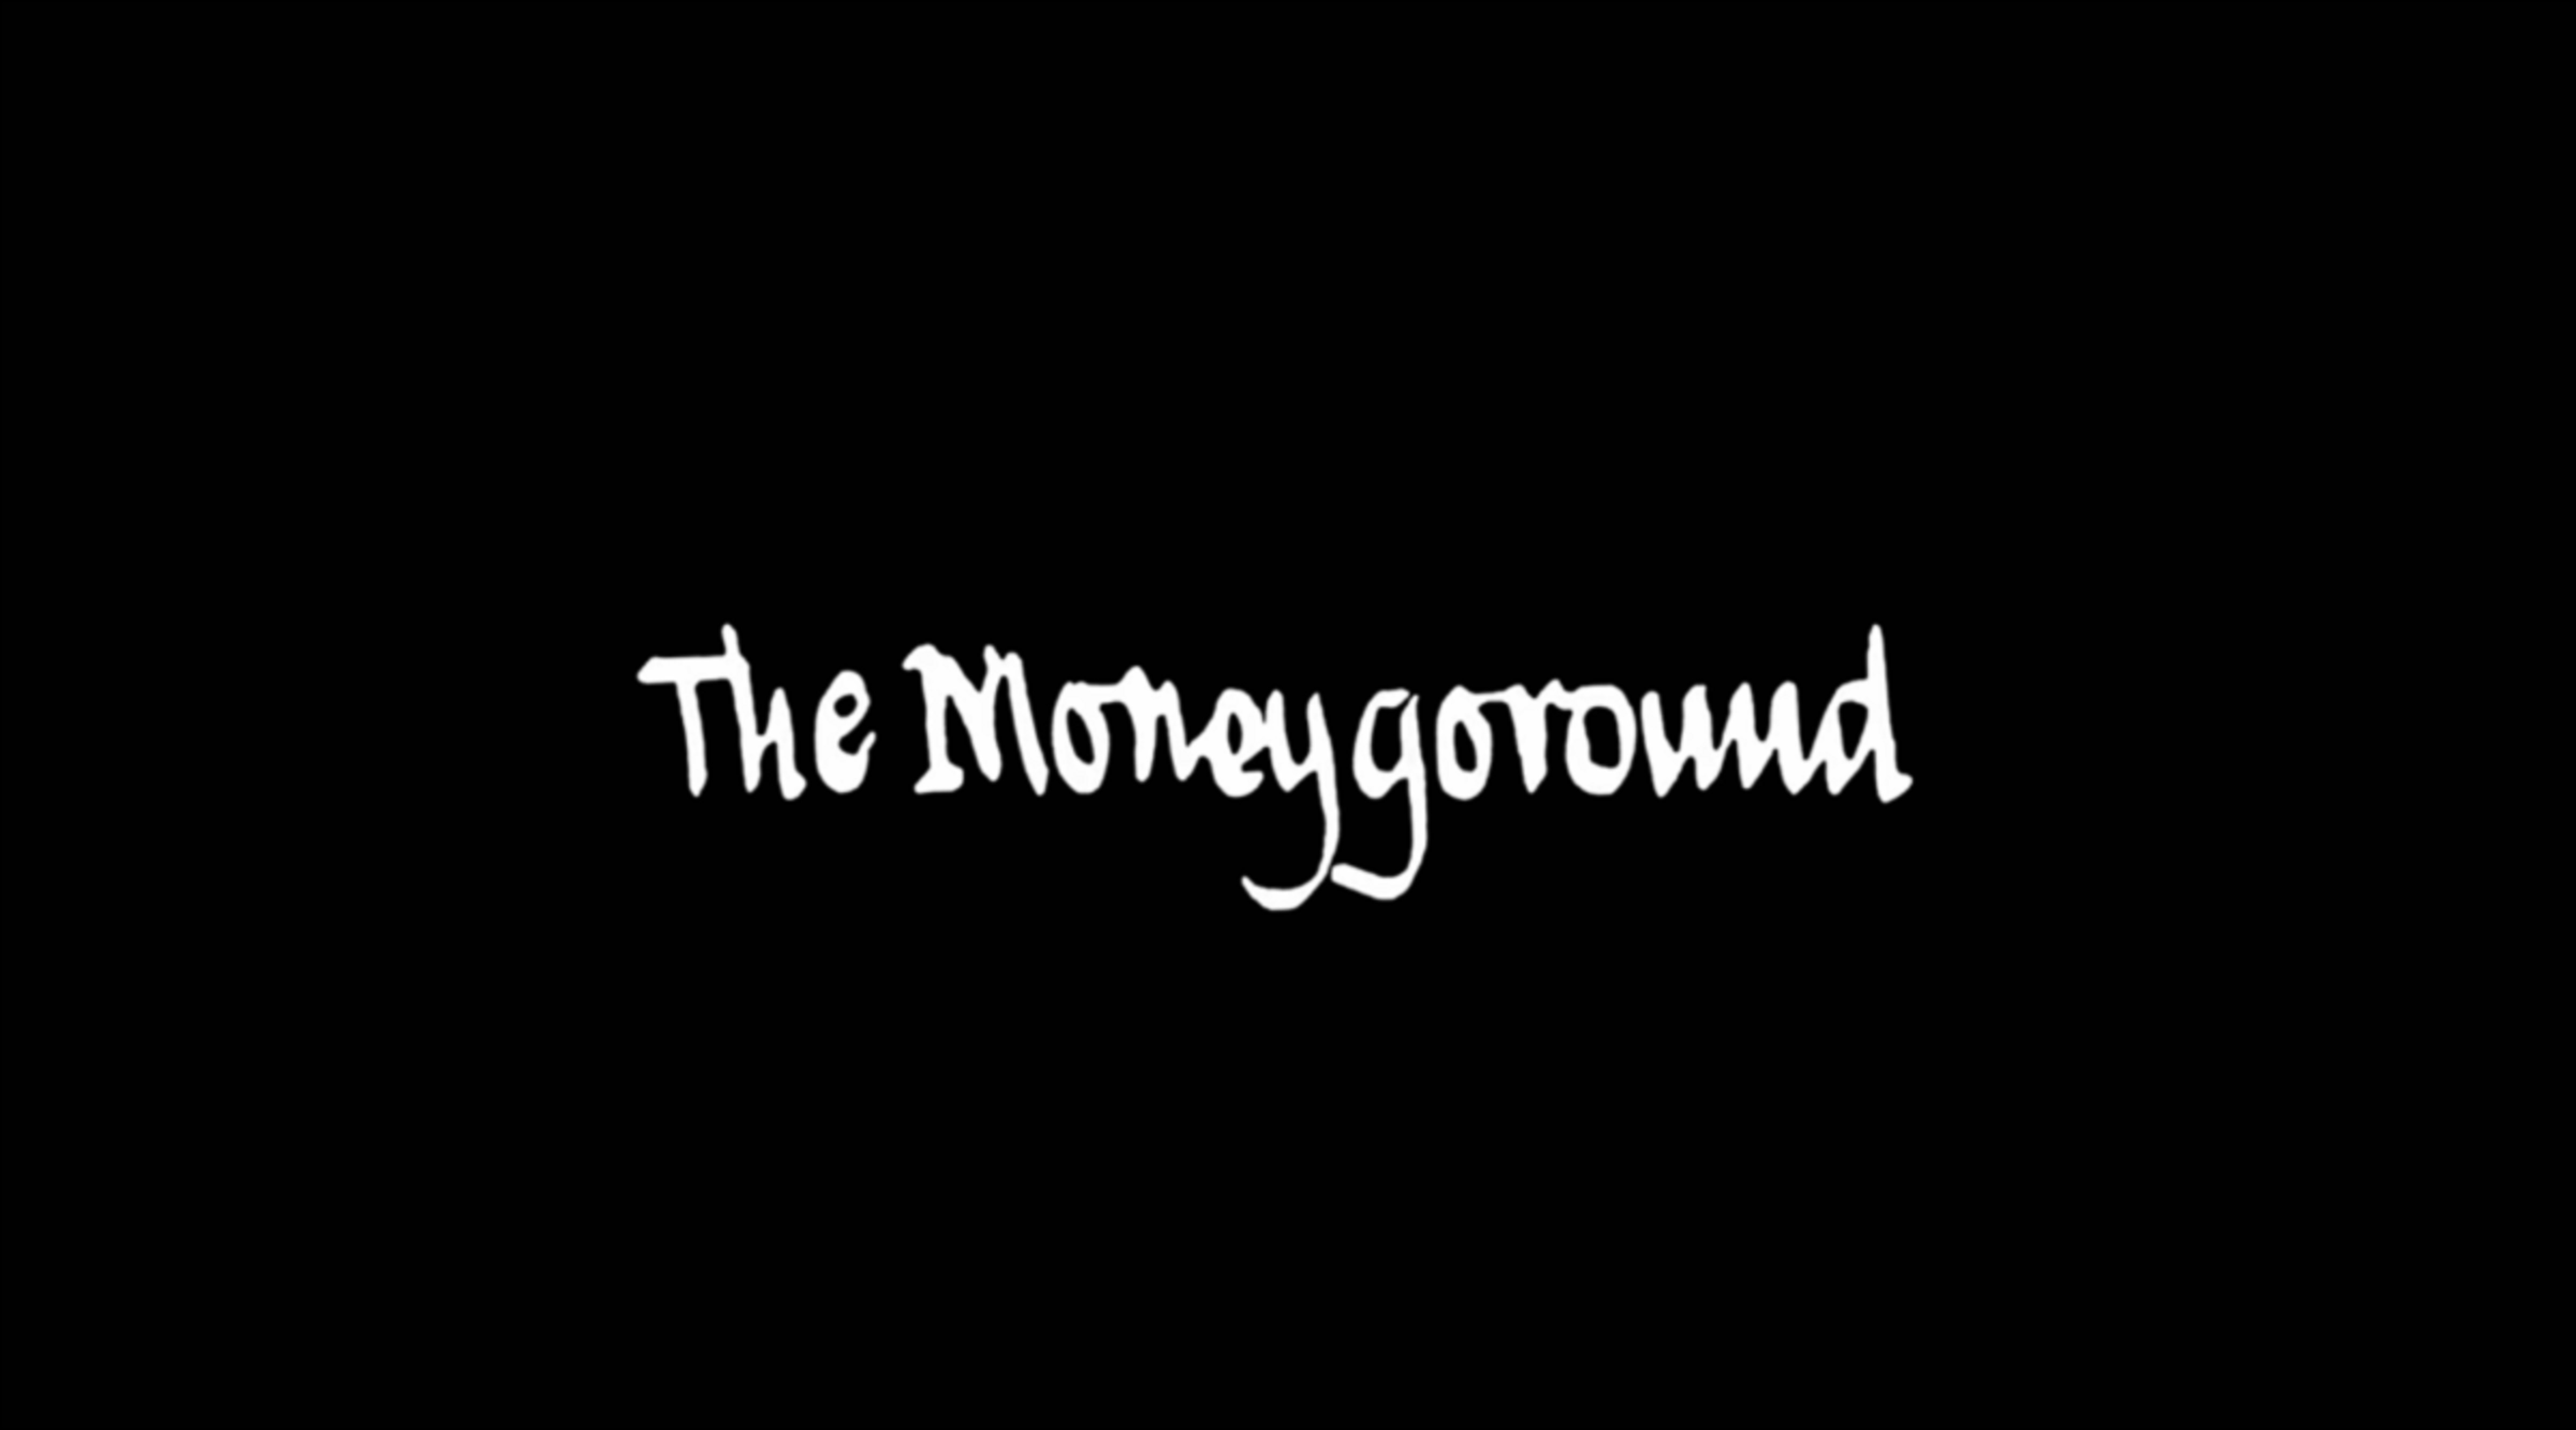 The Kinks present 'The Moneygoround,' one man show live stream on 1/29